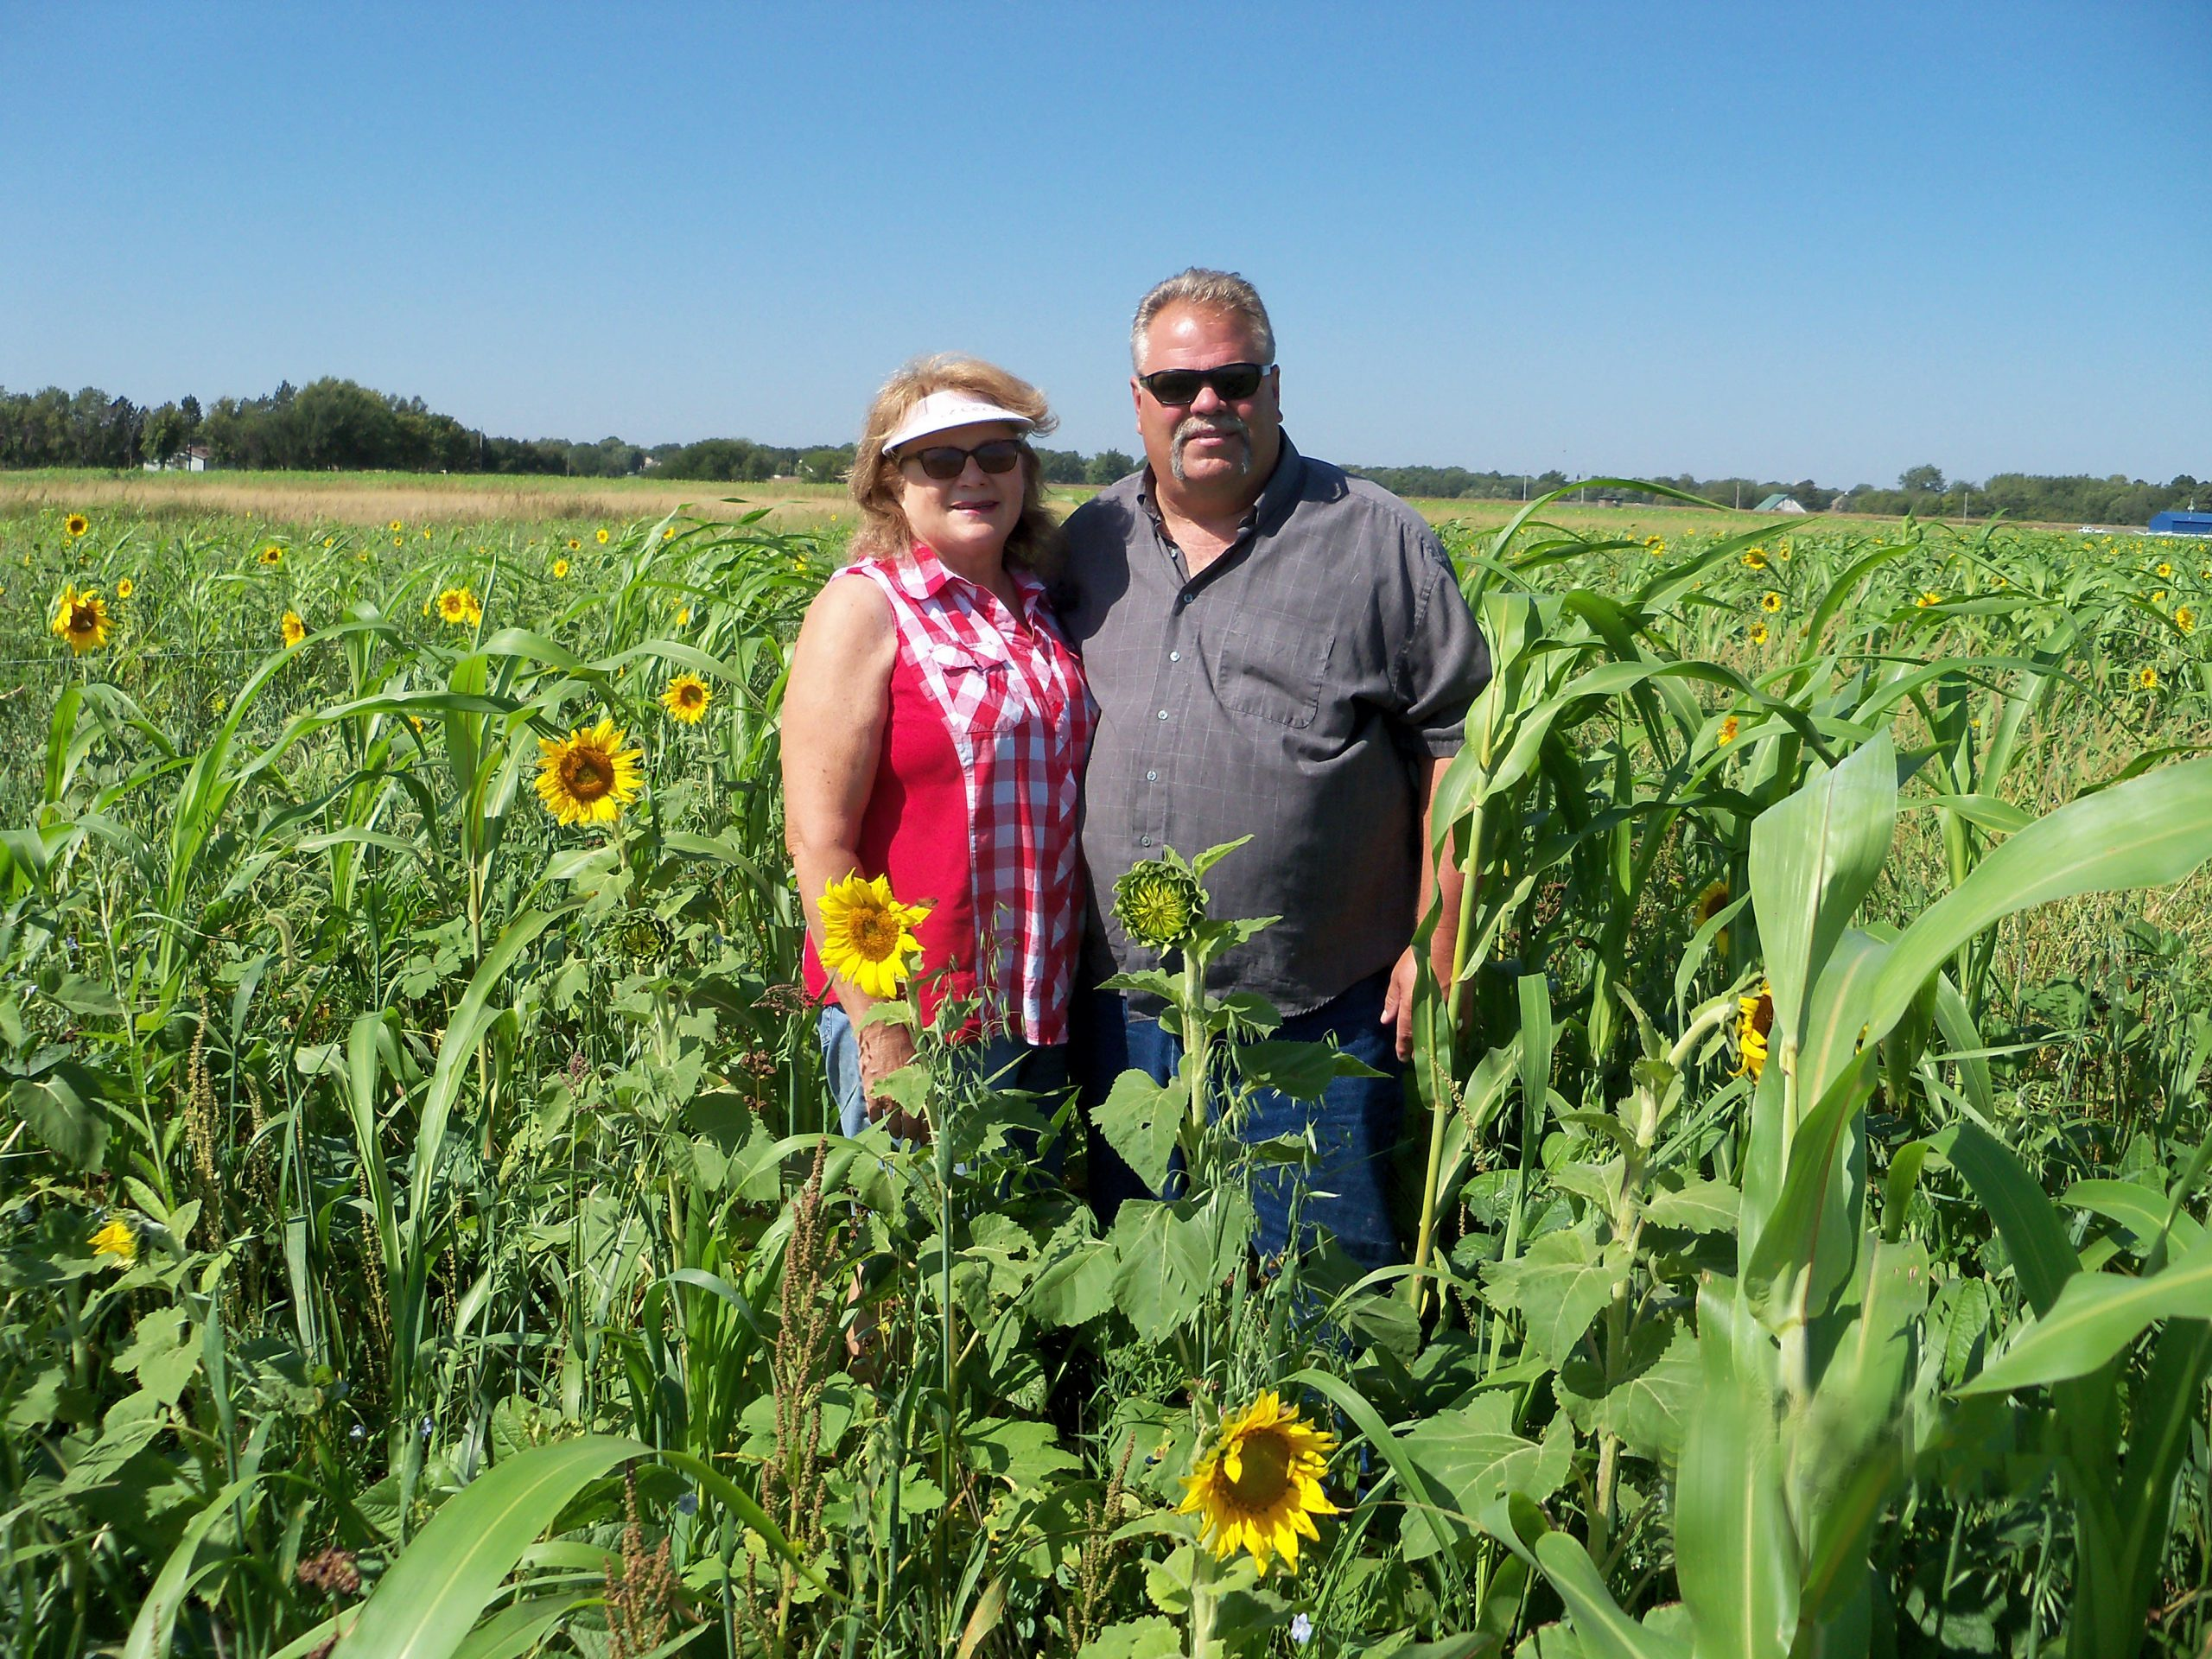 Barbara and Scott Gonnerman in field